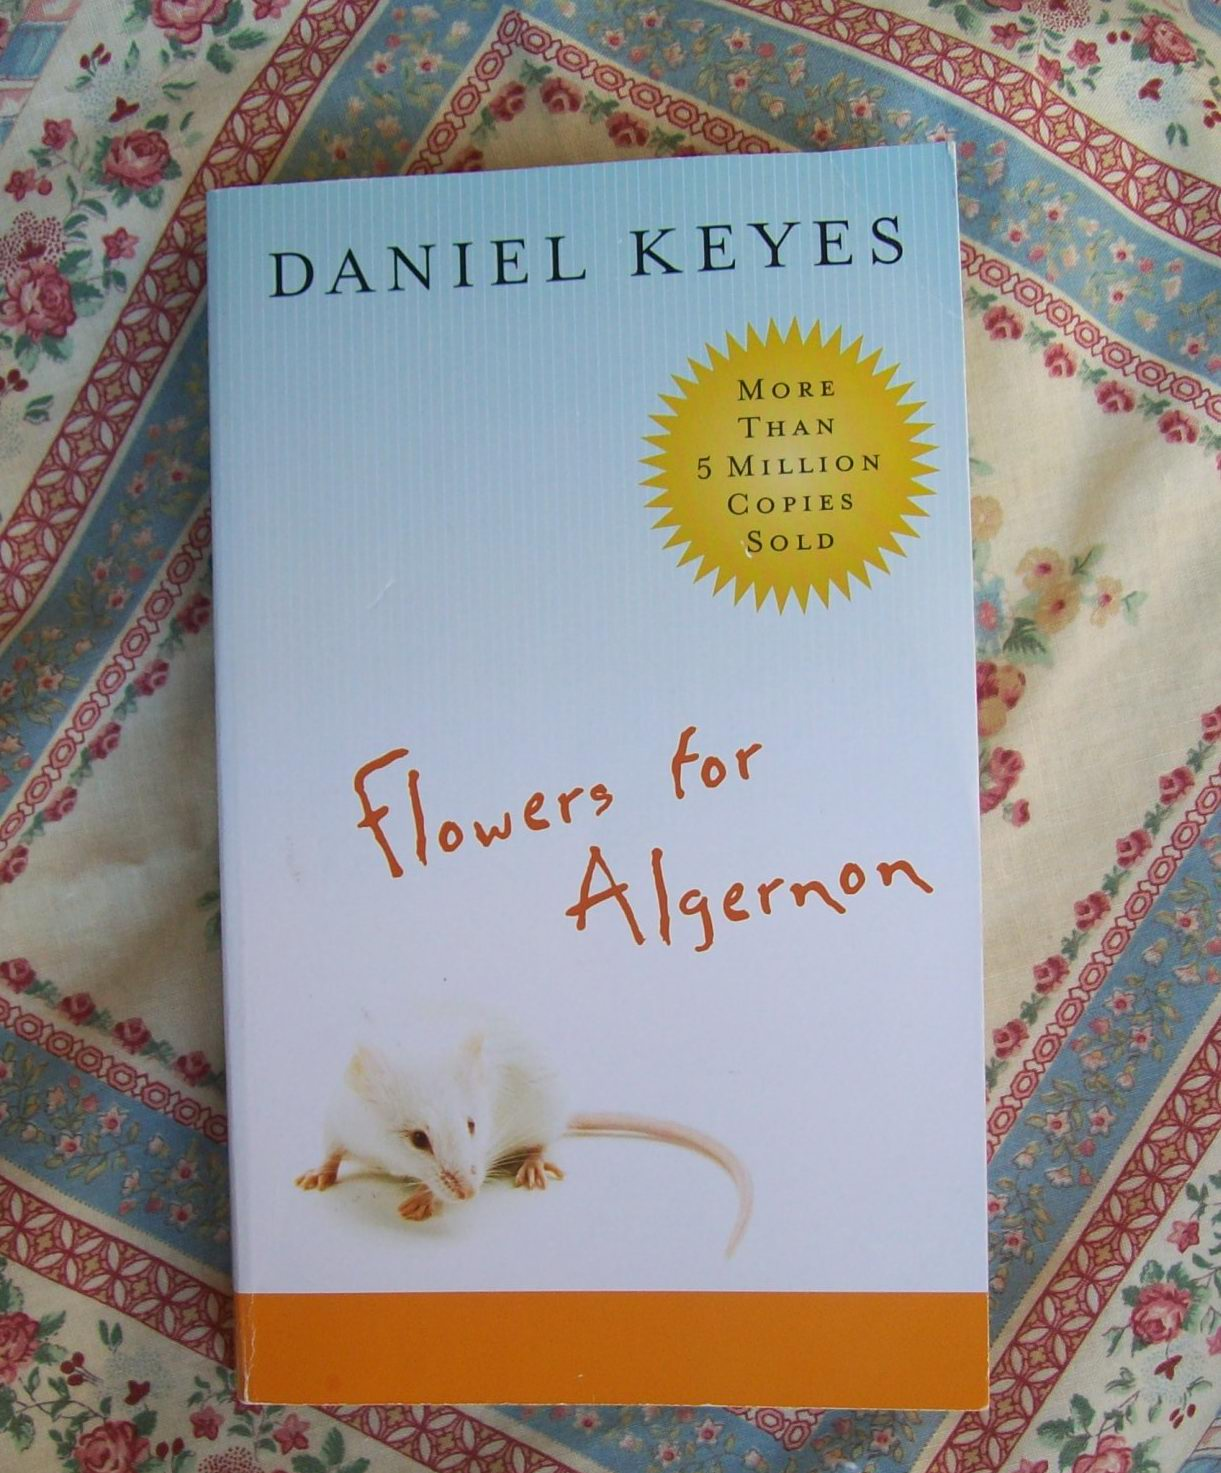 leanne dyck s blog book review flowers for algernon by daniel keyes book review flowers for algernon by daniel keyes